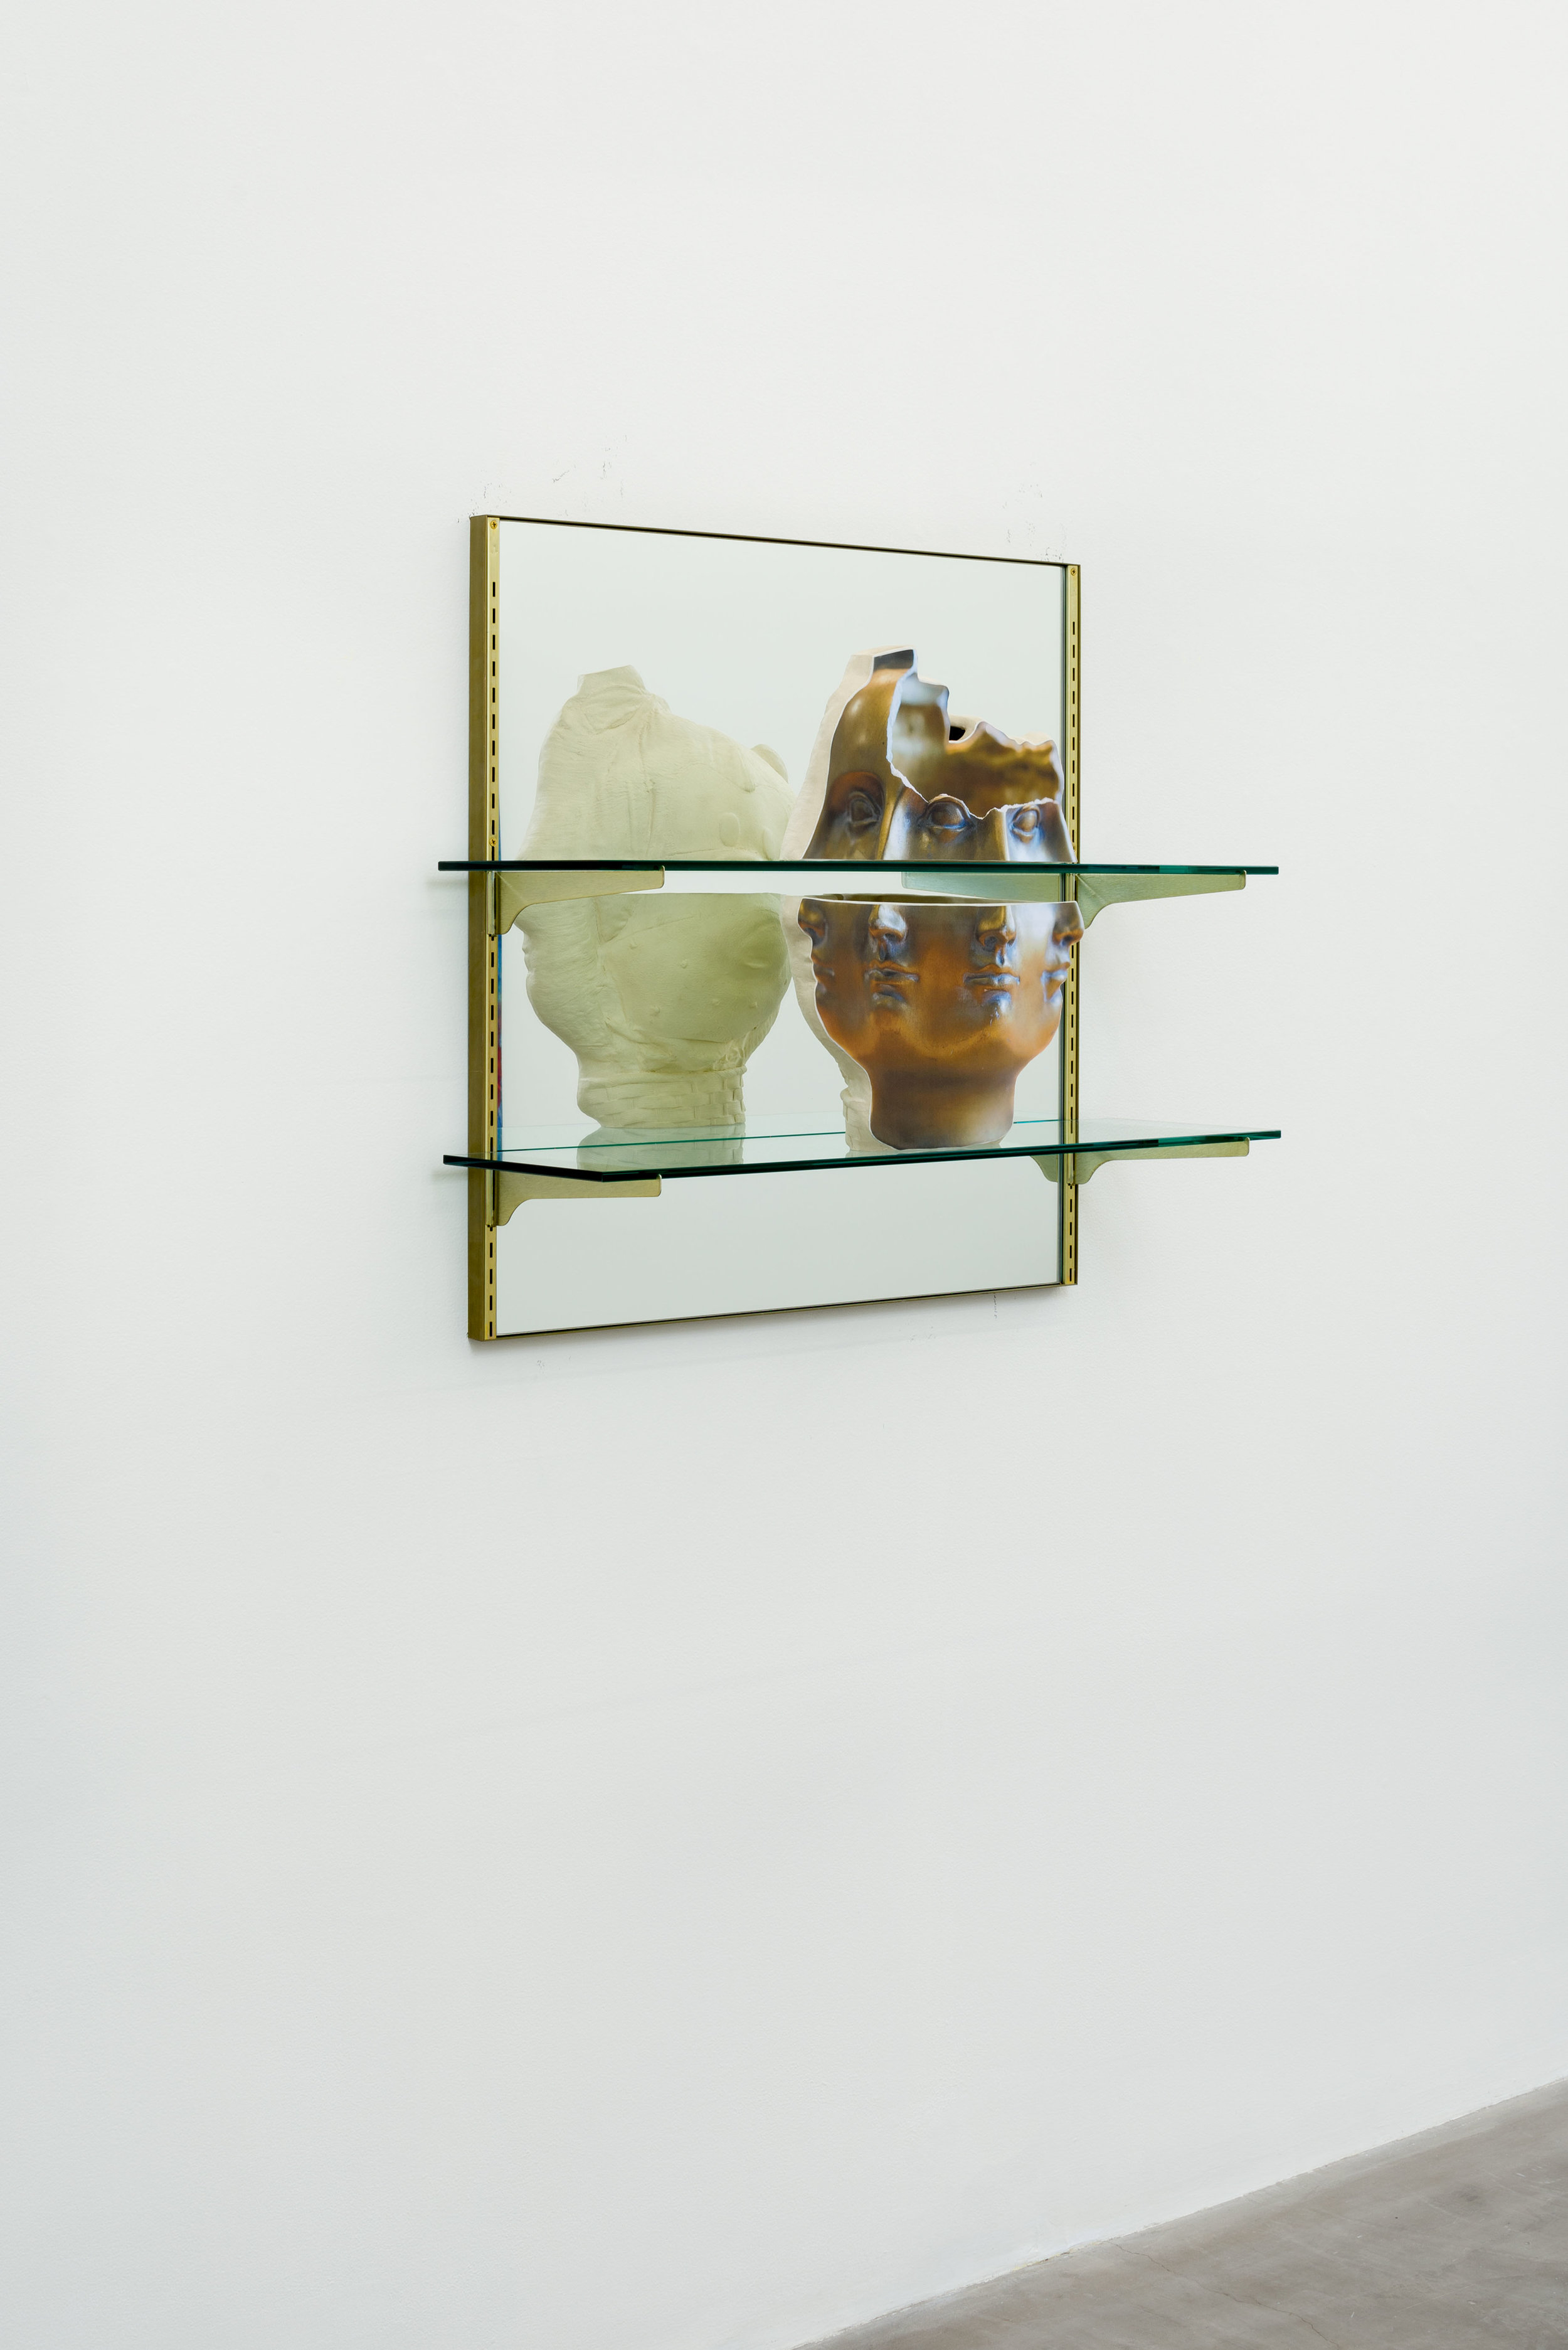 Ry Rocklen, Picnic with Janus, 2017 ceramic with shelve, mirror and frame 78,5 x 78,5 x 25,5 cm - 30 7/8 x 30 7/8 x 10 inches